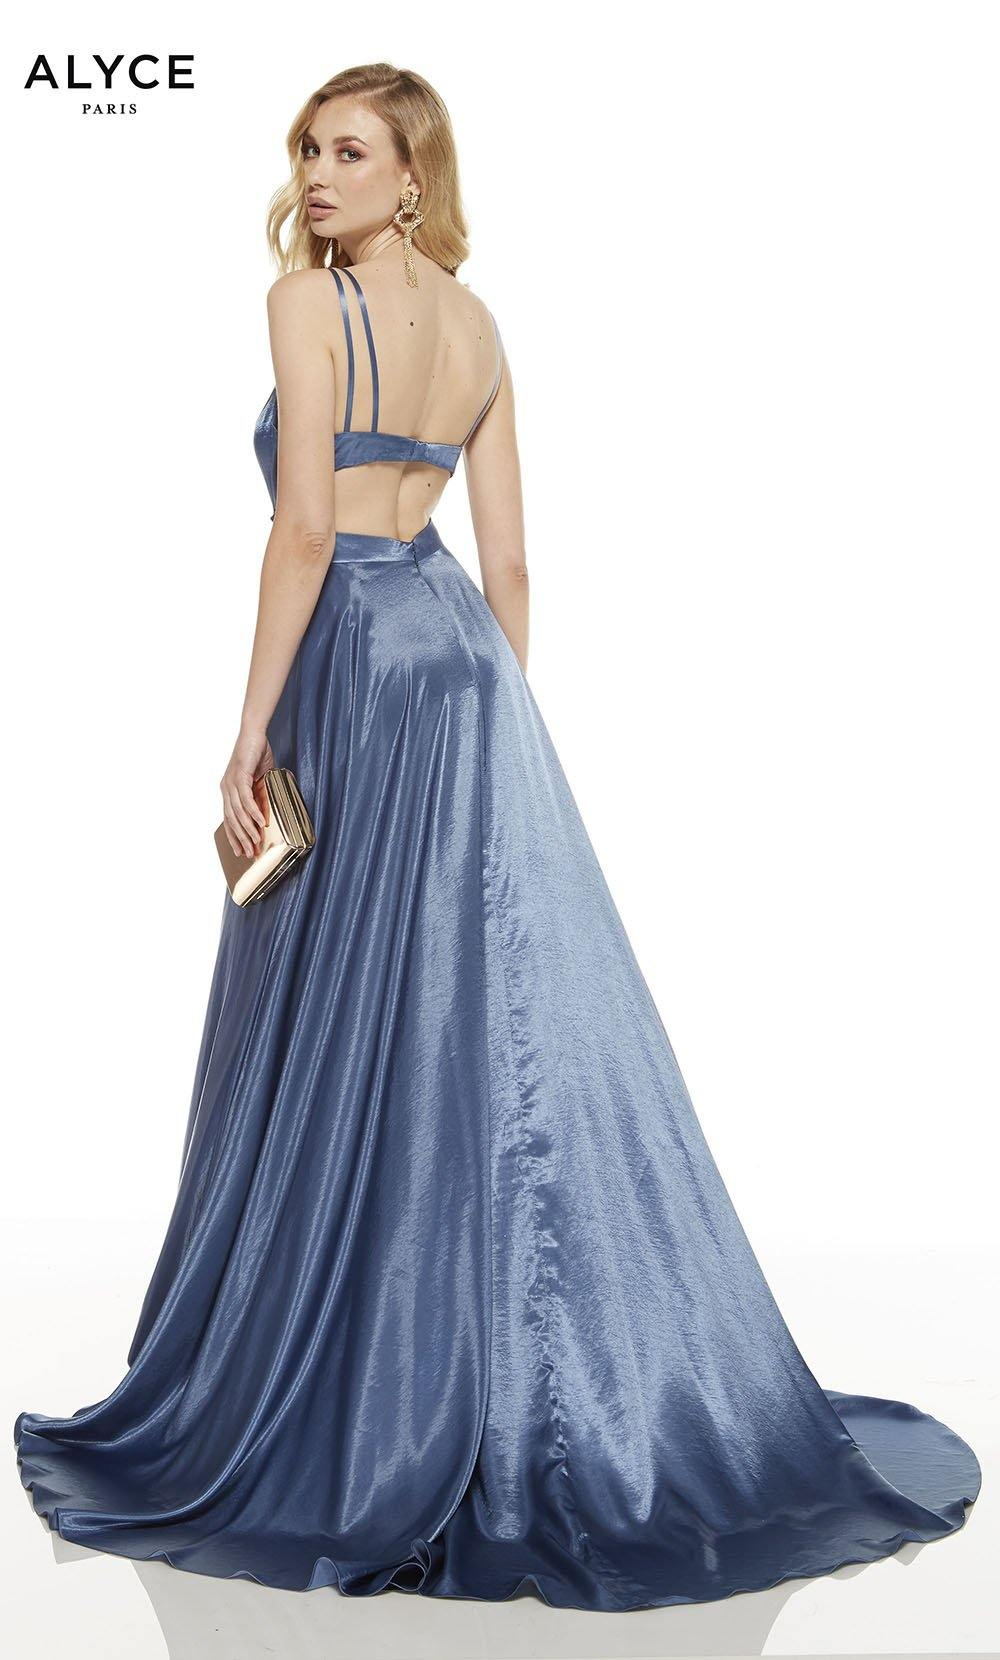 Deep French Blue prom dress with a cutout back